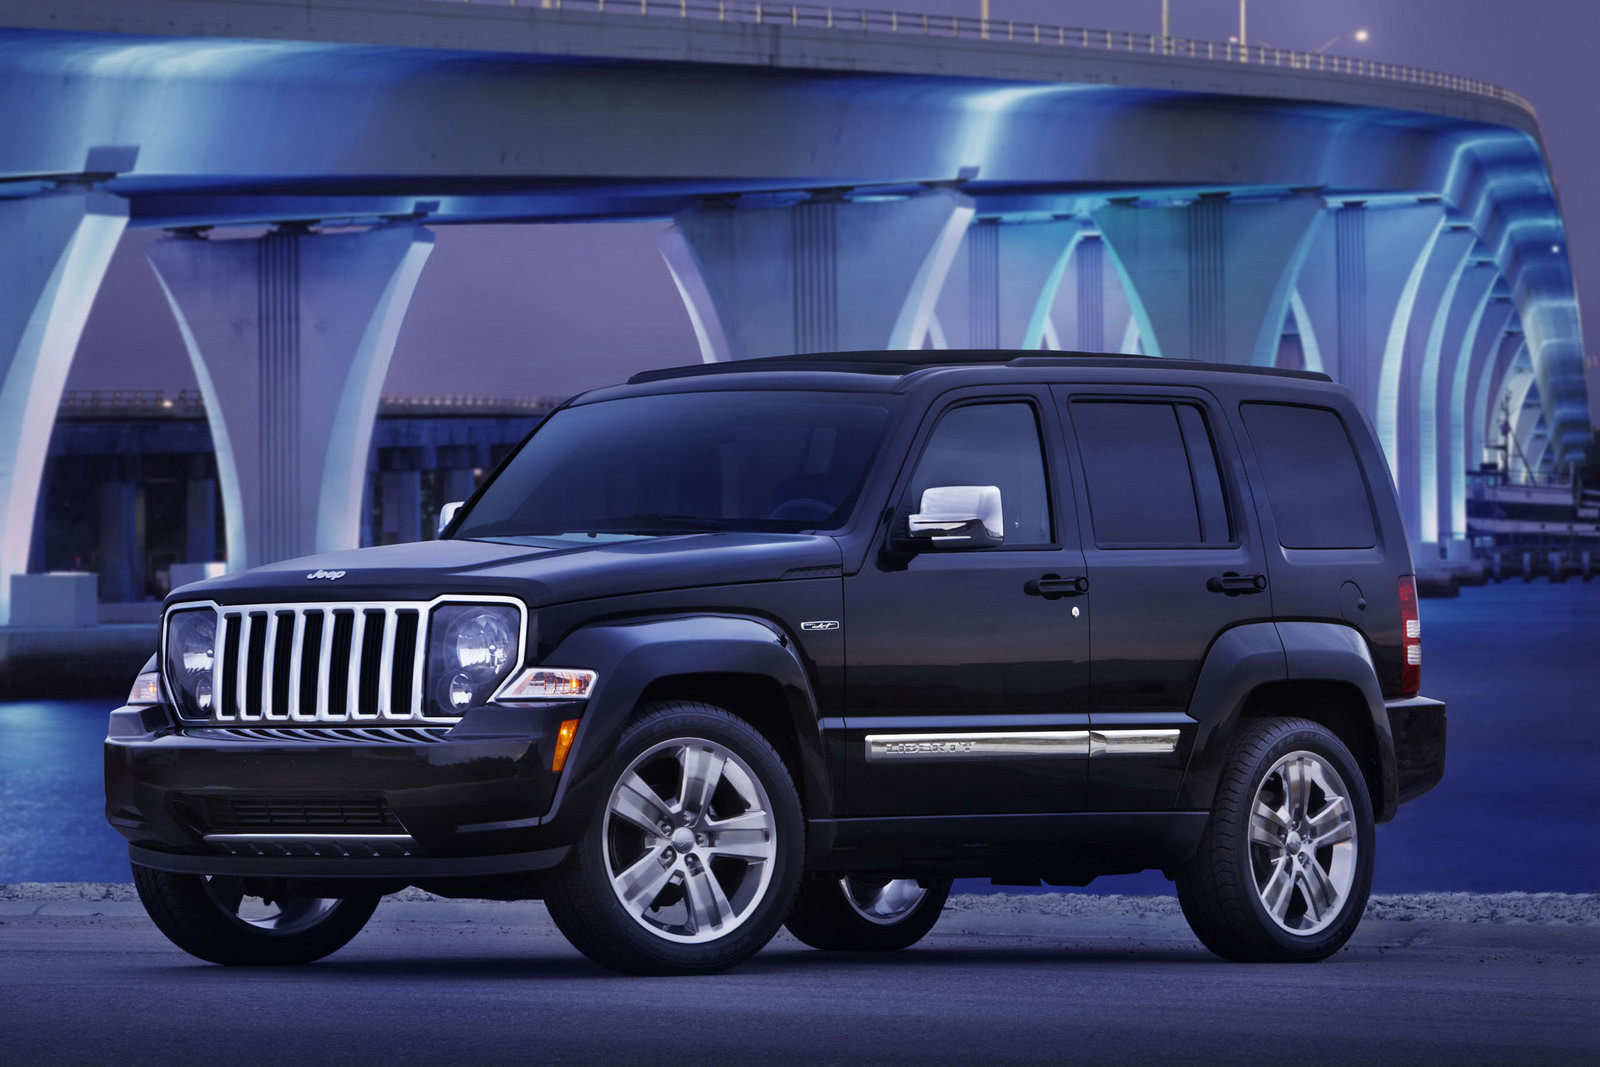 2011 jeep liberty jet review top speed. Black Bedroom Furniture Sets. Home Design Ideas